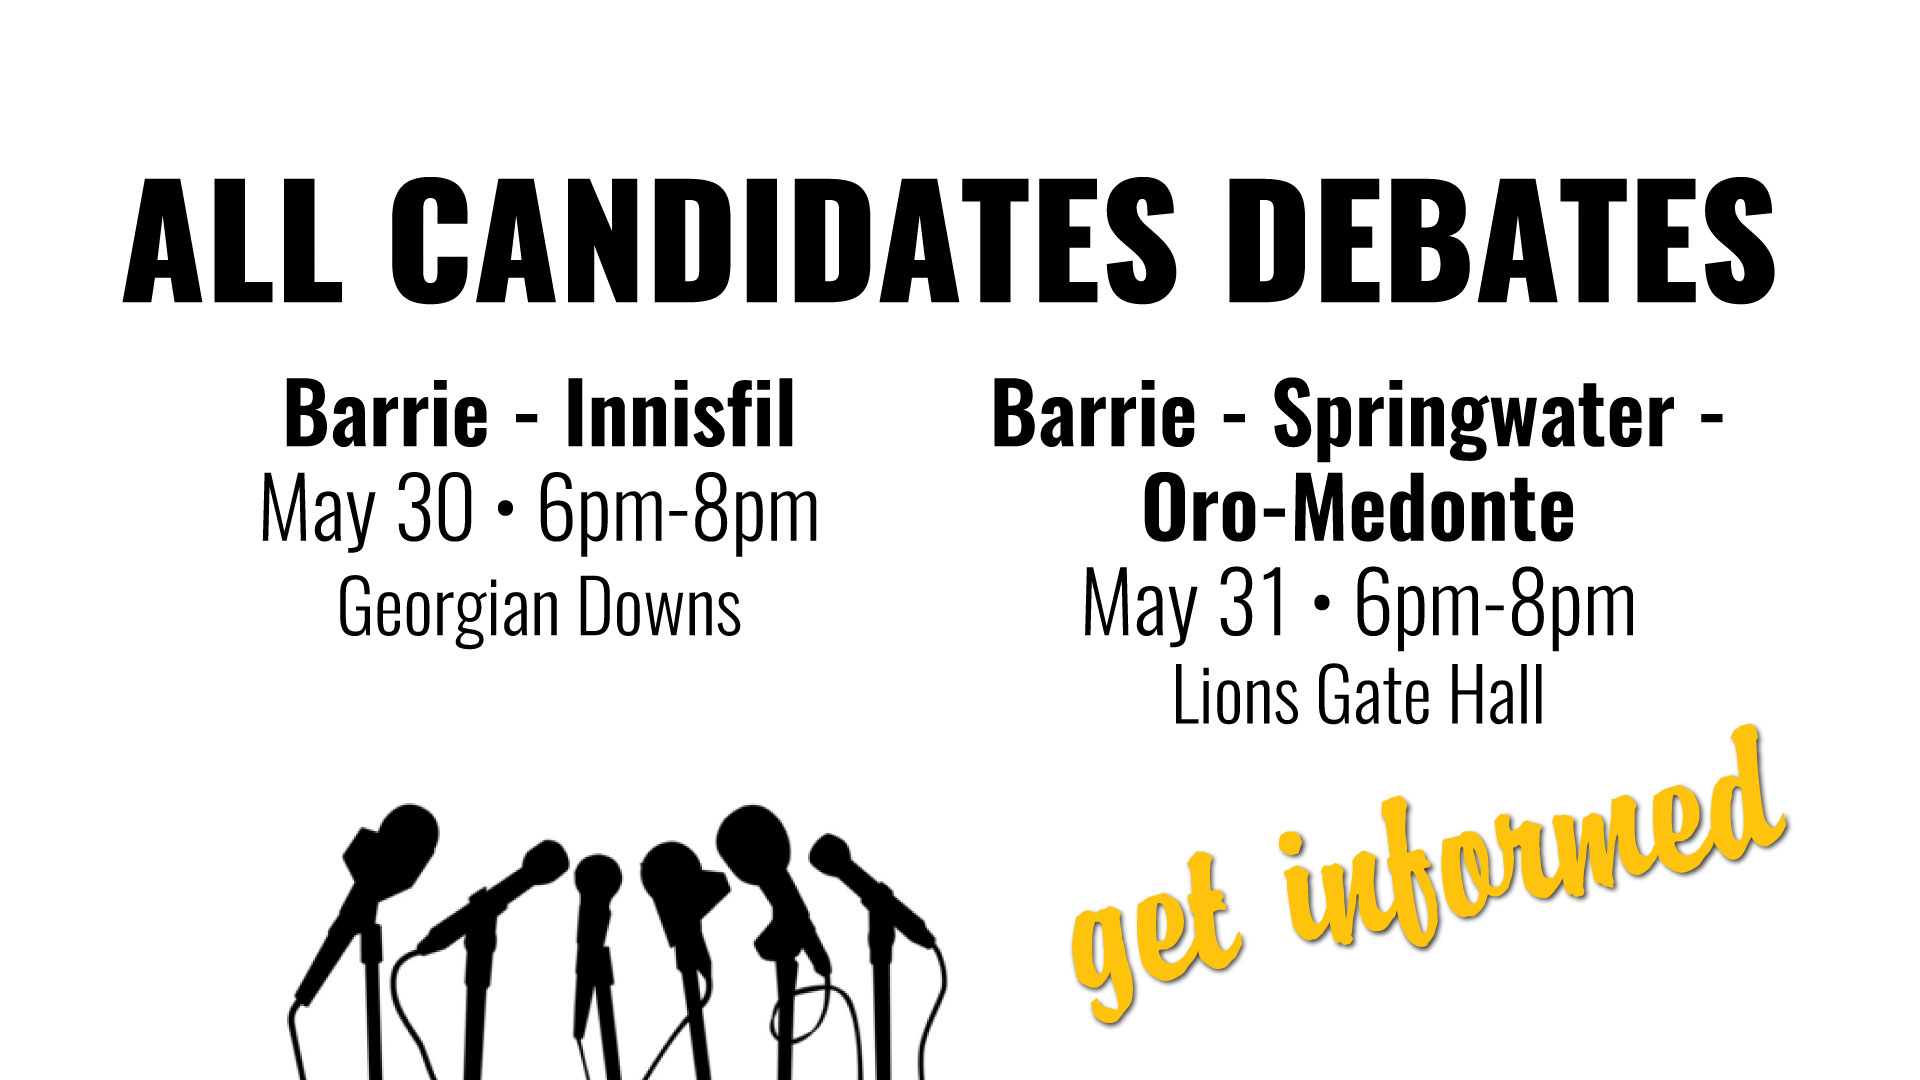 All Candidates Debates - May 30 & 31